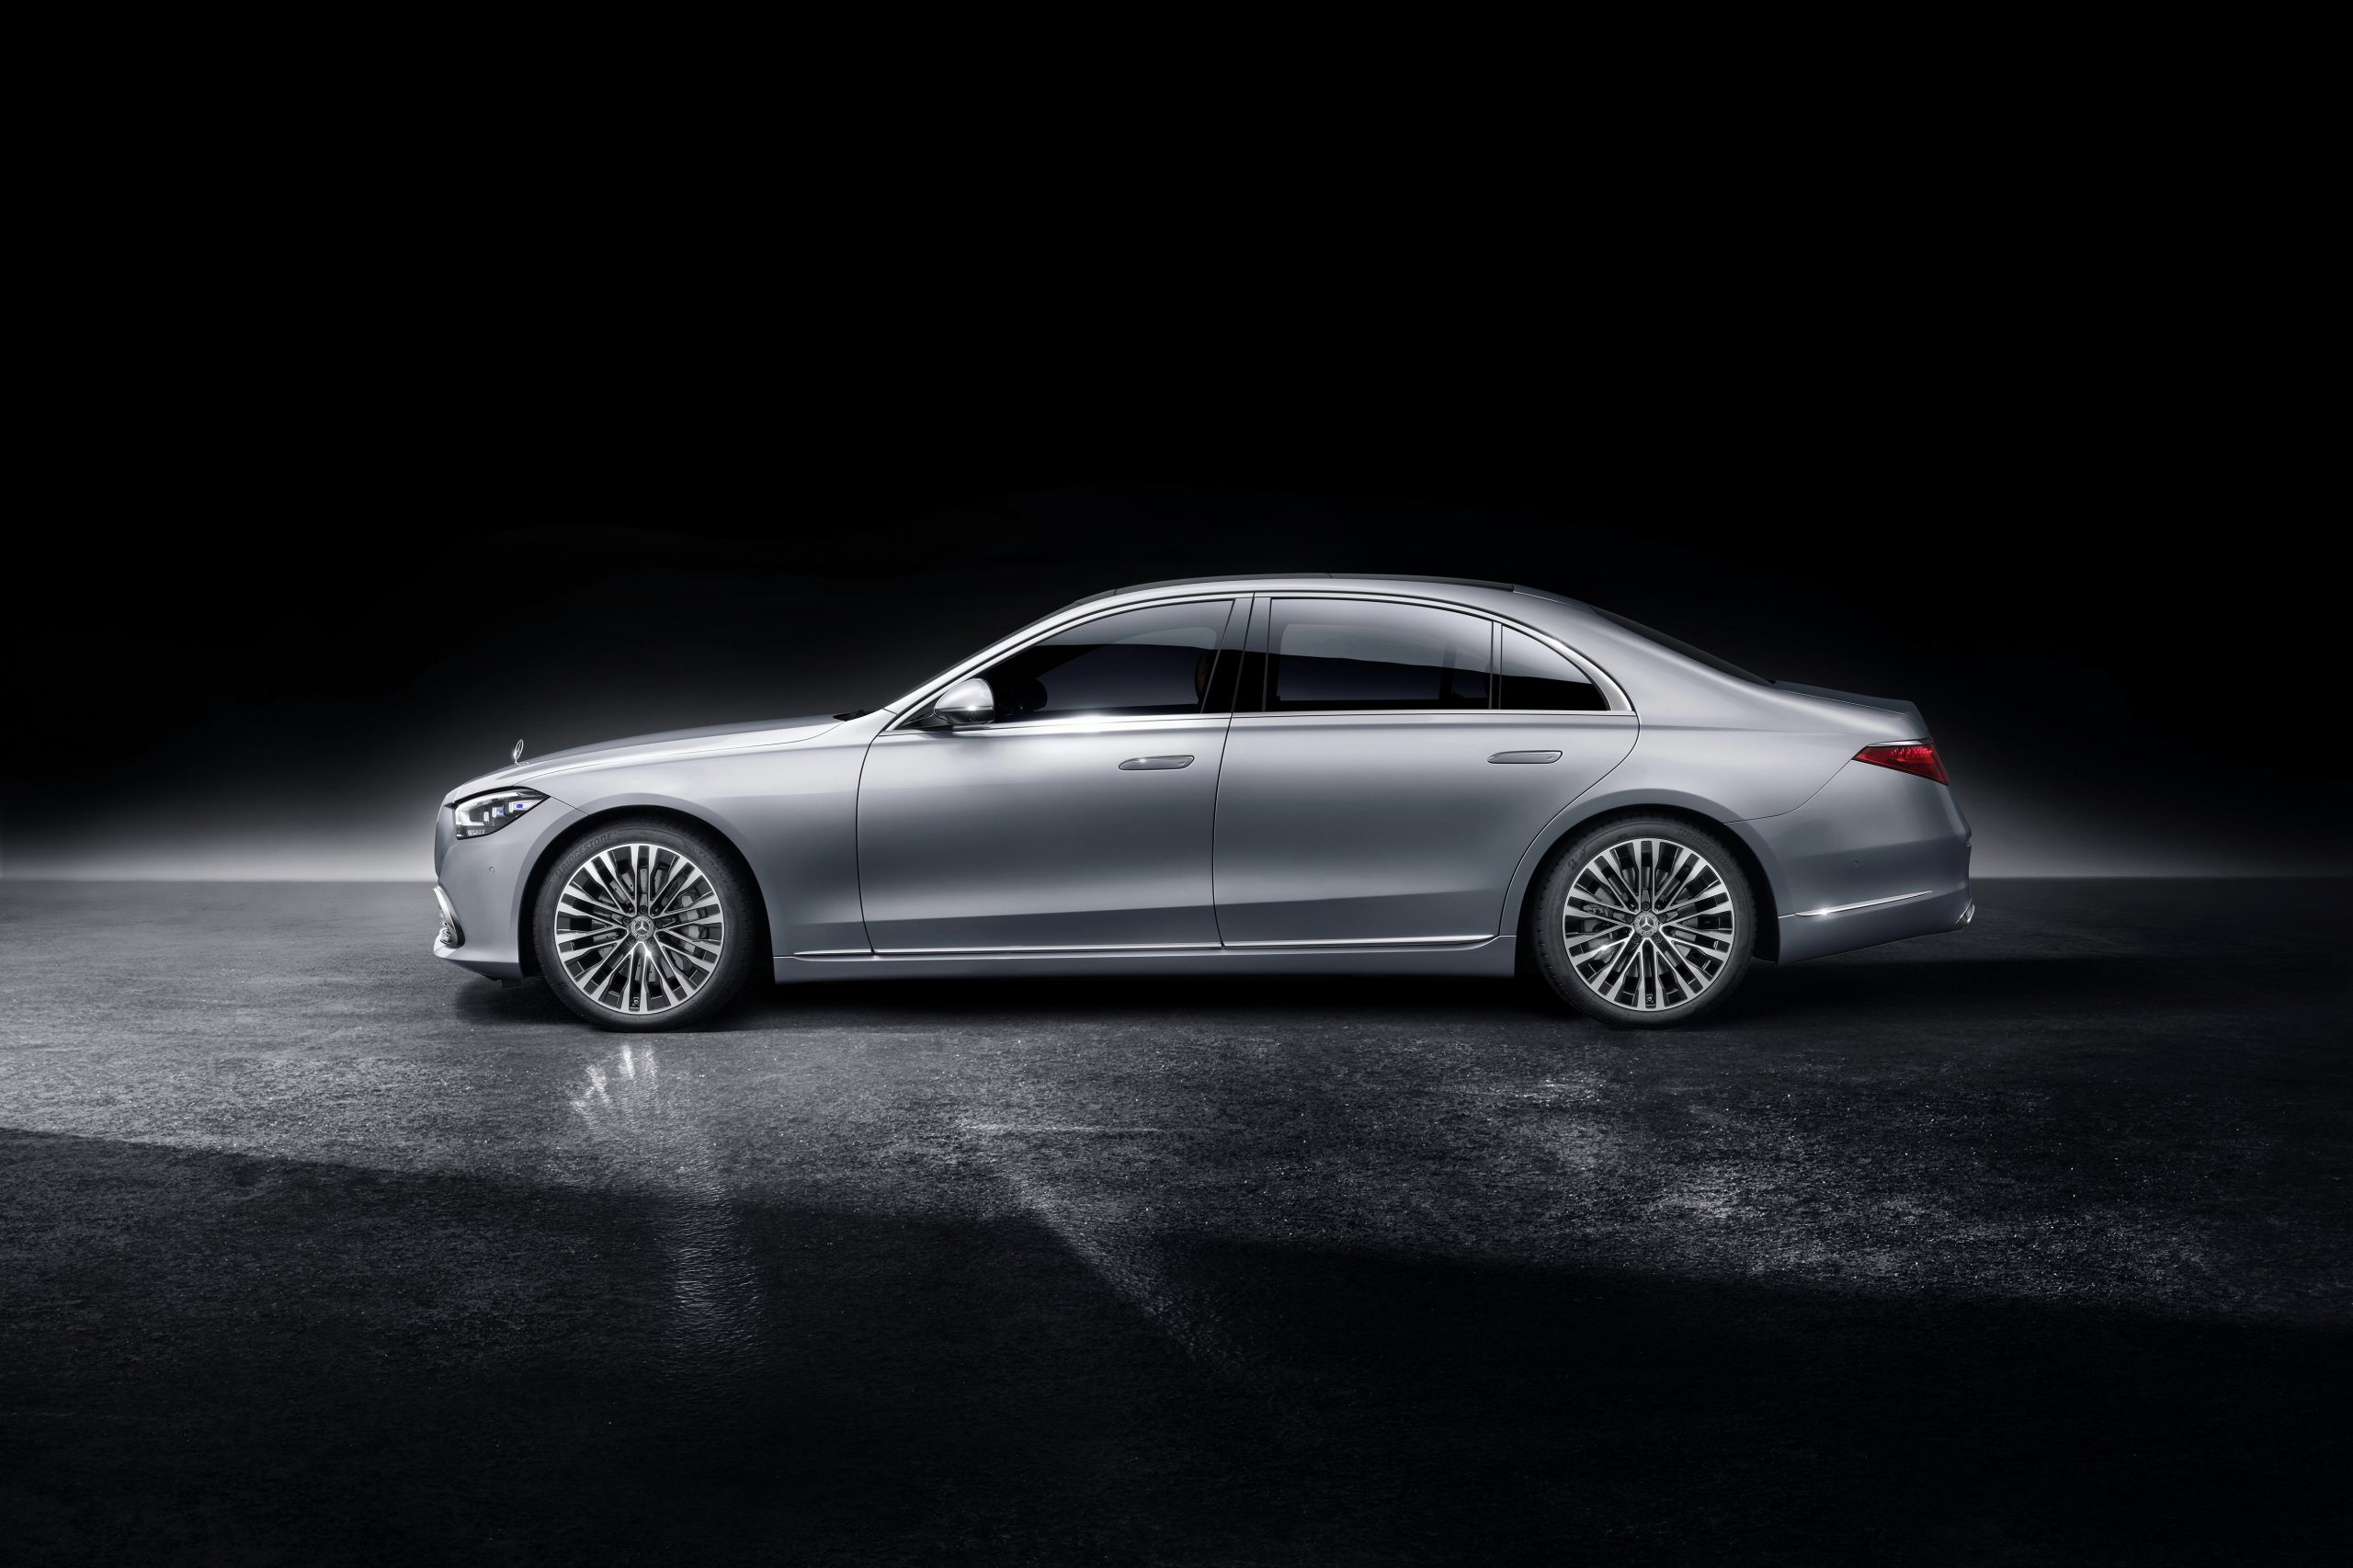 Mercedes-Benz S Class side profile